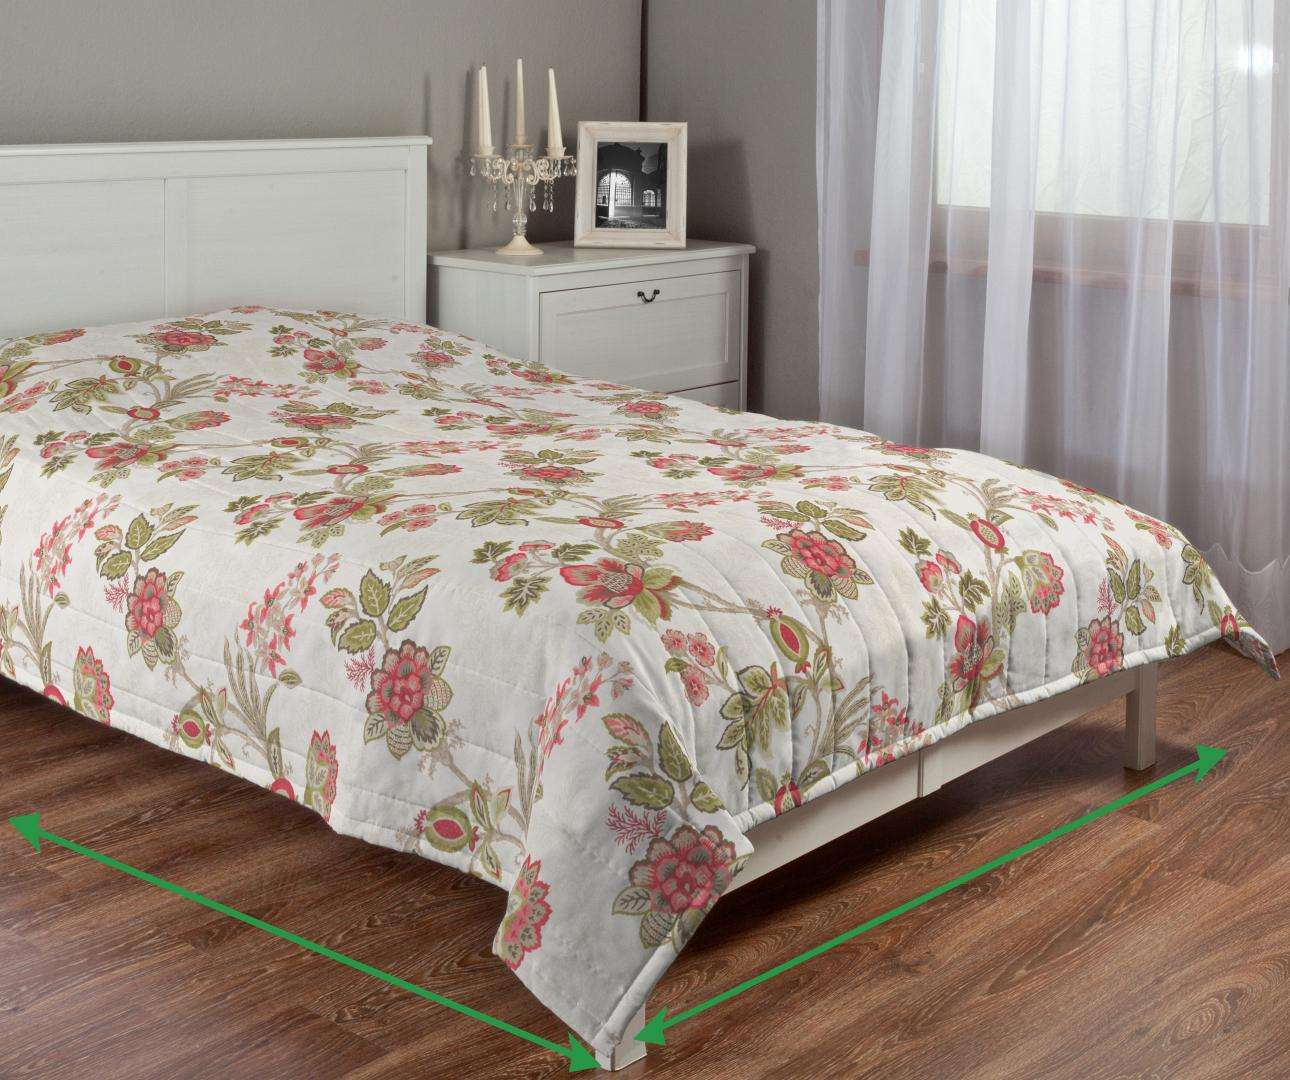 Quilted throw (vertical quilt pattern) in collection Flowers, fabric: 140-98